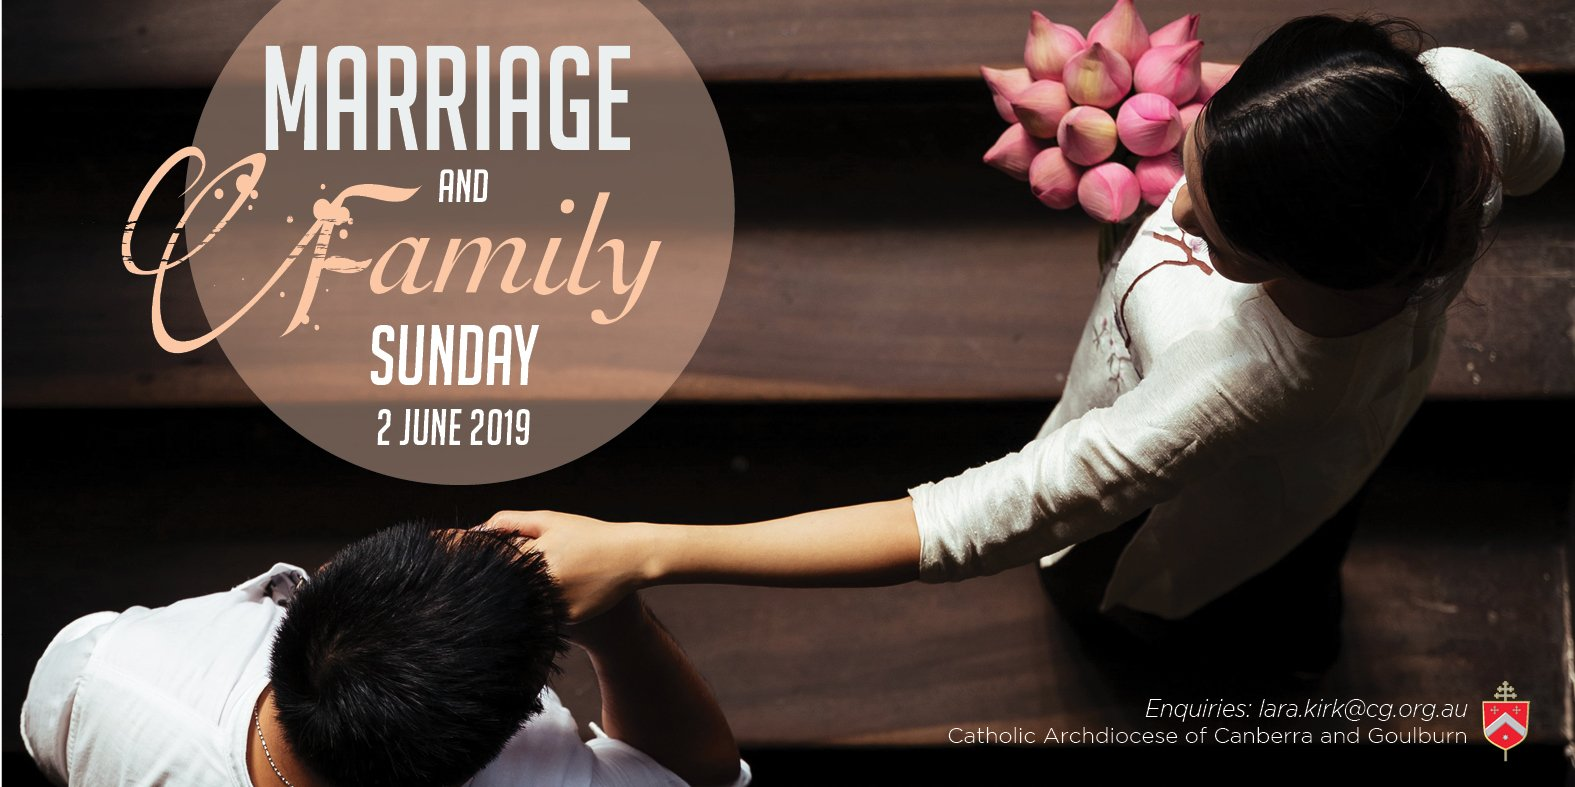 Marriage & Family Sunday Mass & Marriage as Mission Forum | The